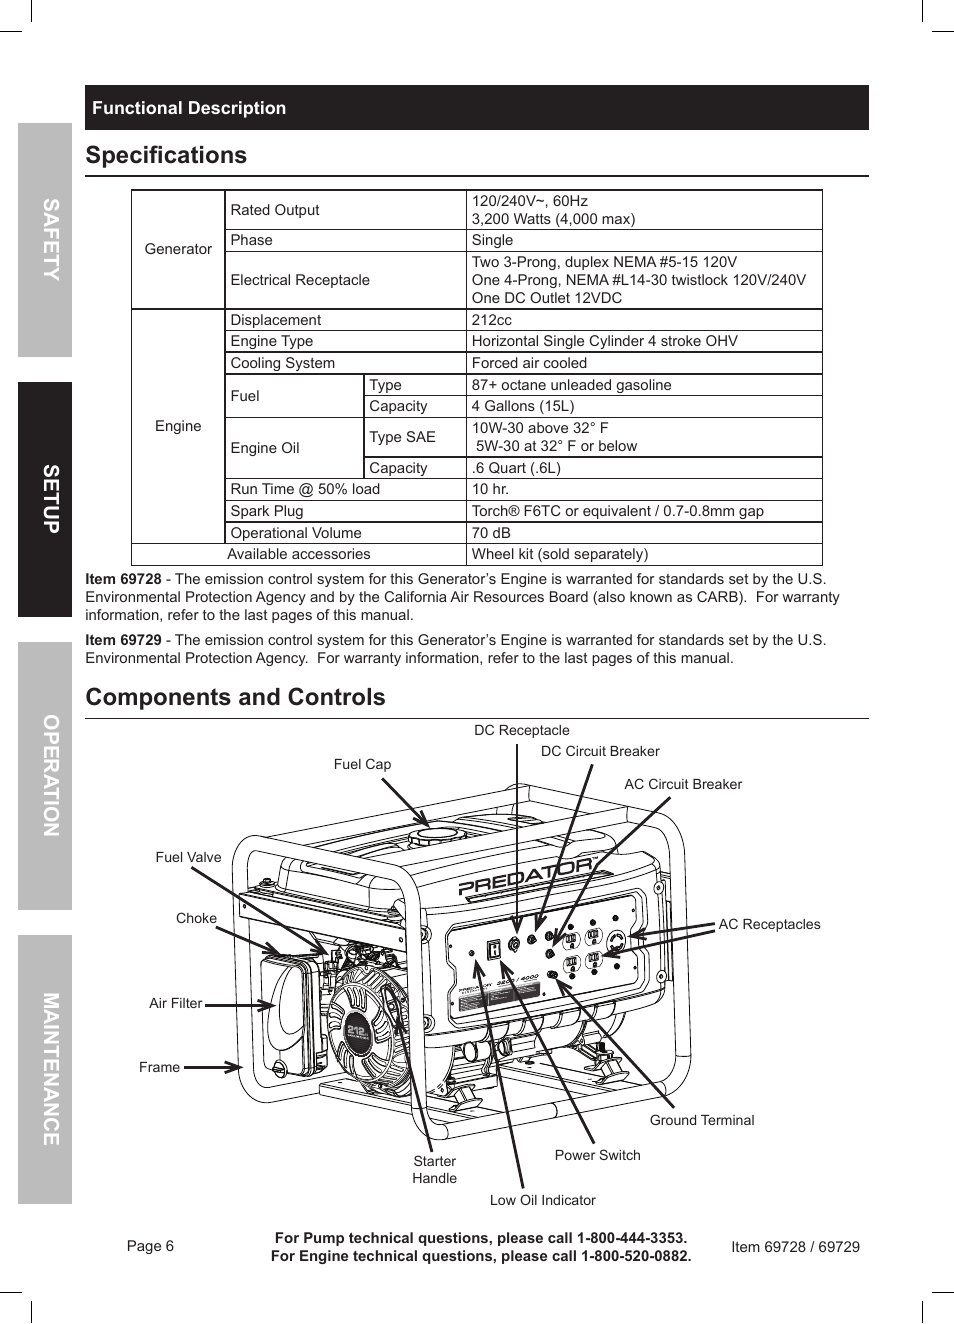 medium resolution of specifications components and controls harbor freight predator generator wiring diagram